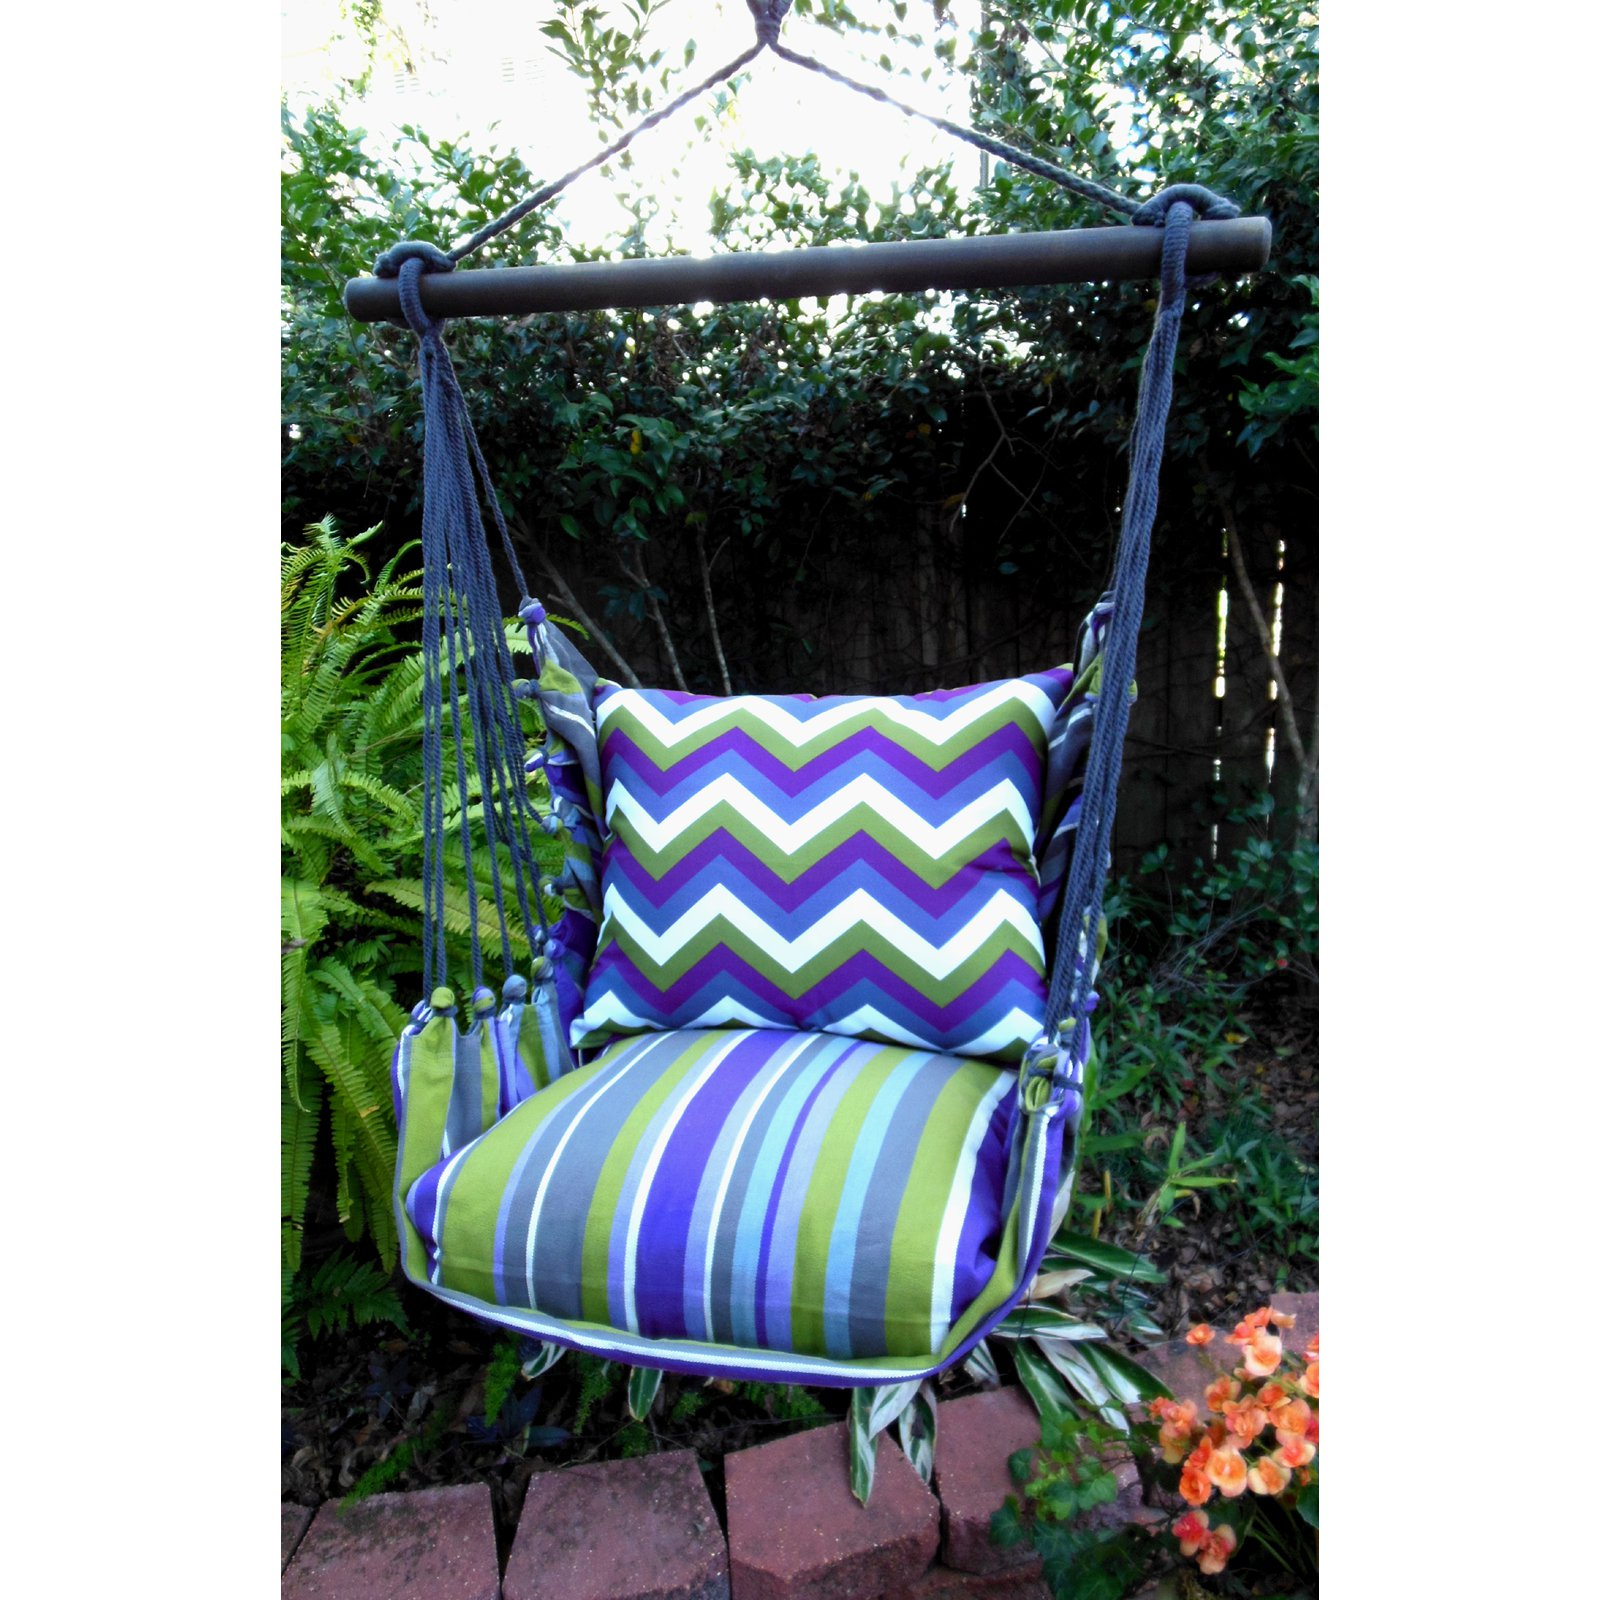 Magnolia Casual Regal Chevron Hammock Chair & Pillow Set